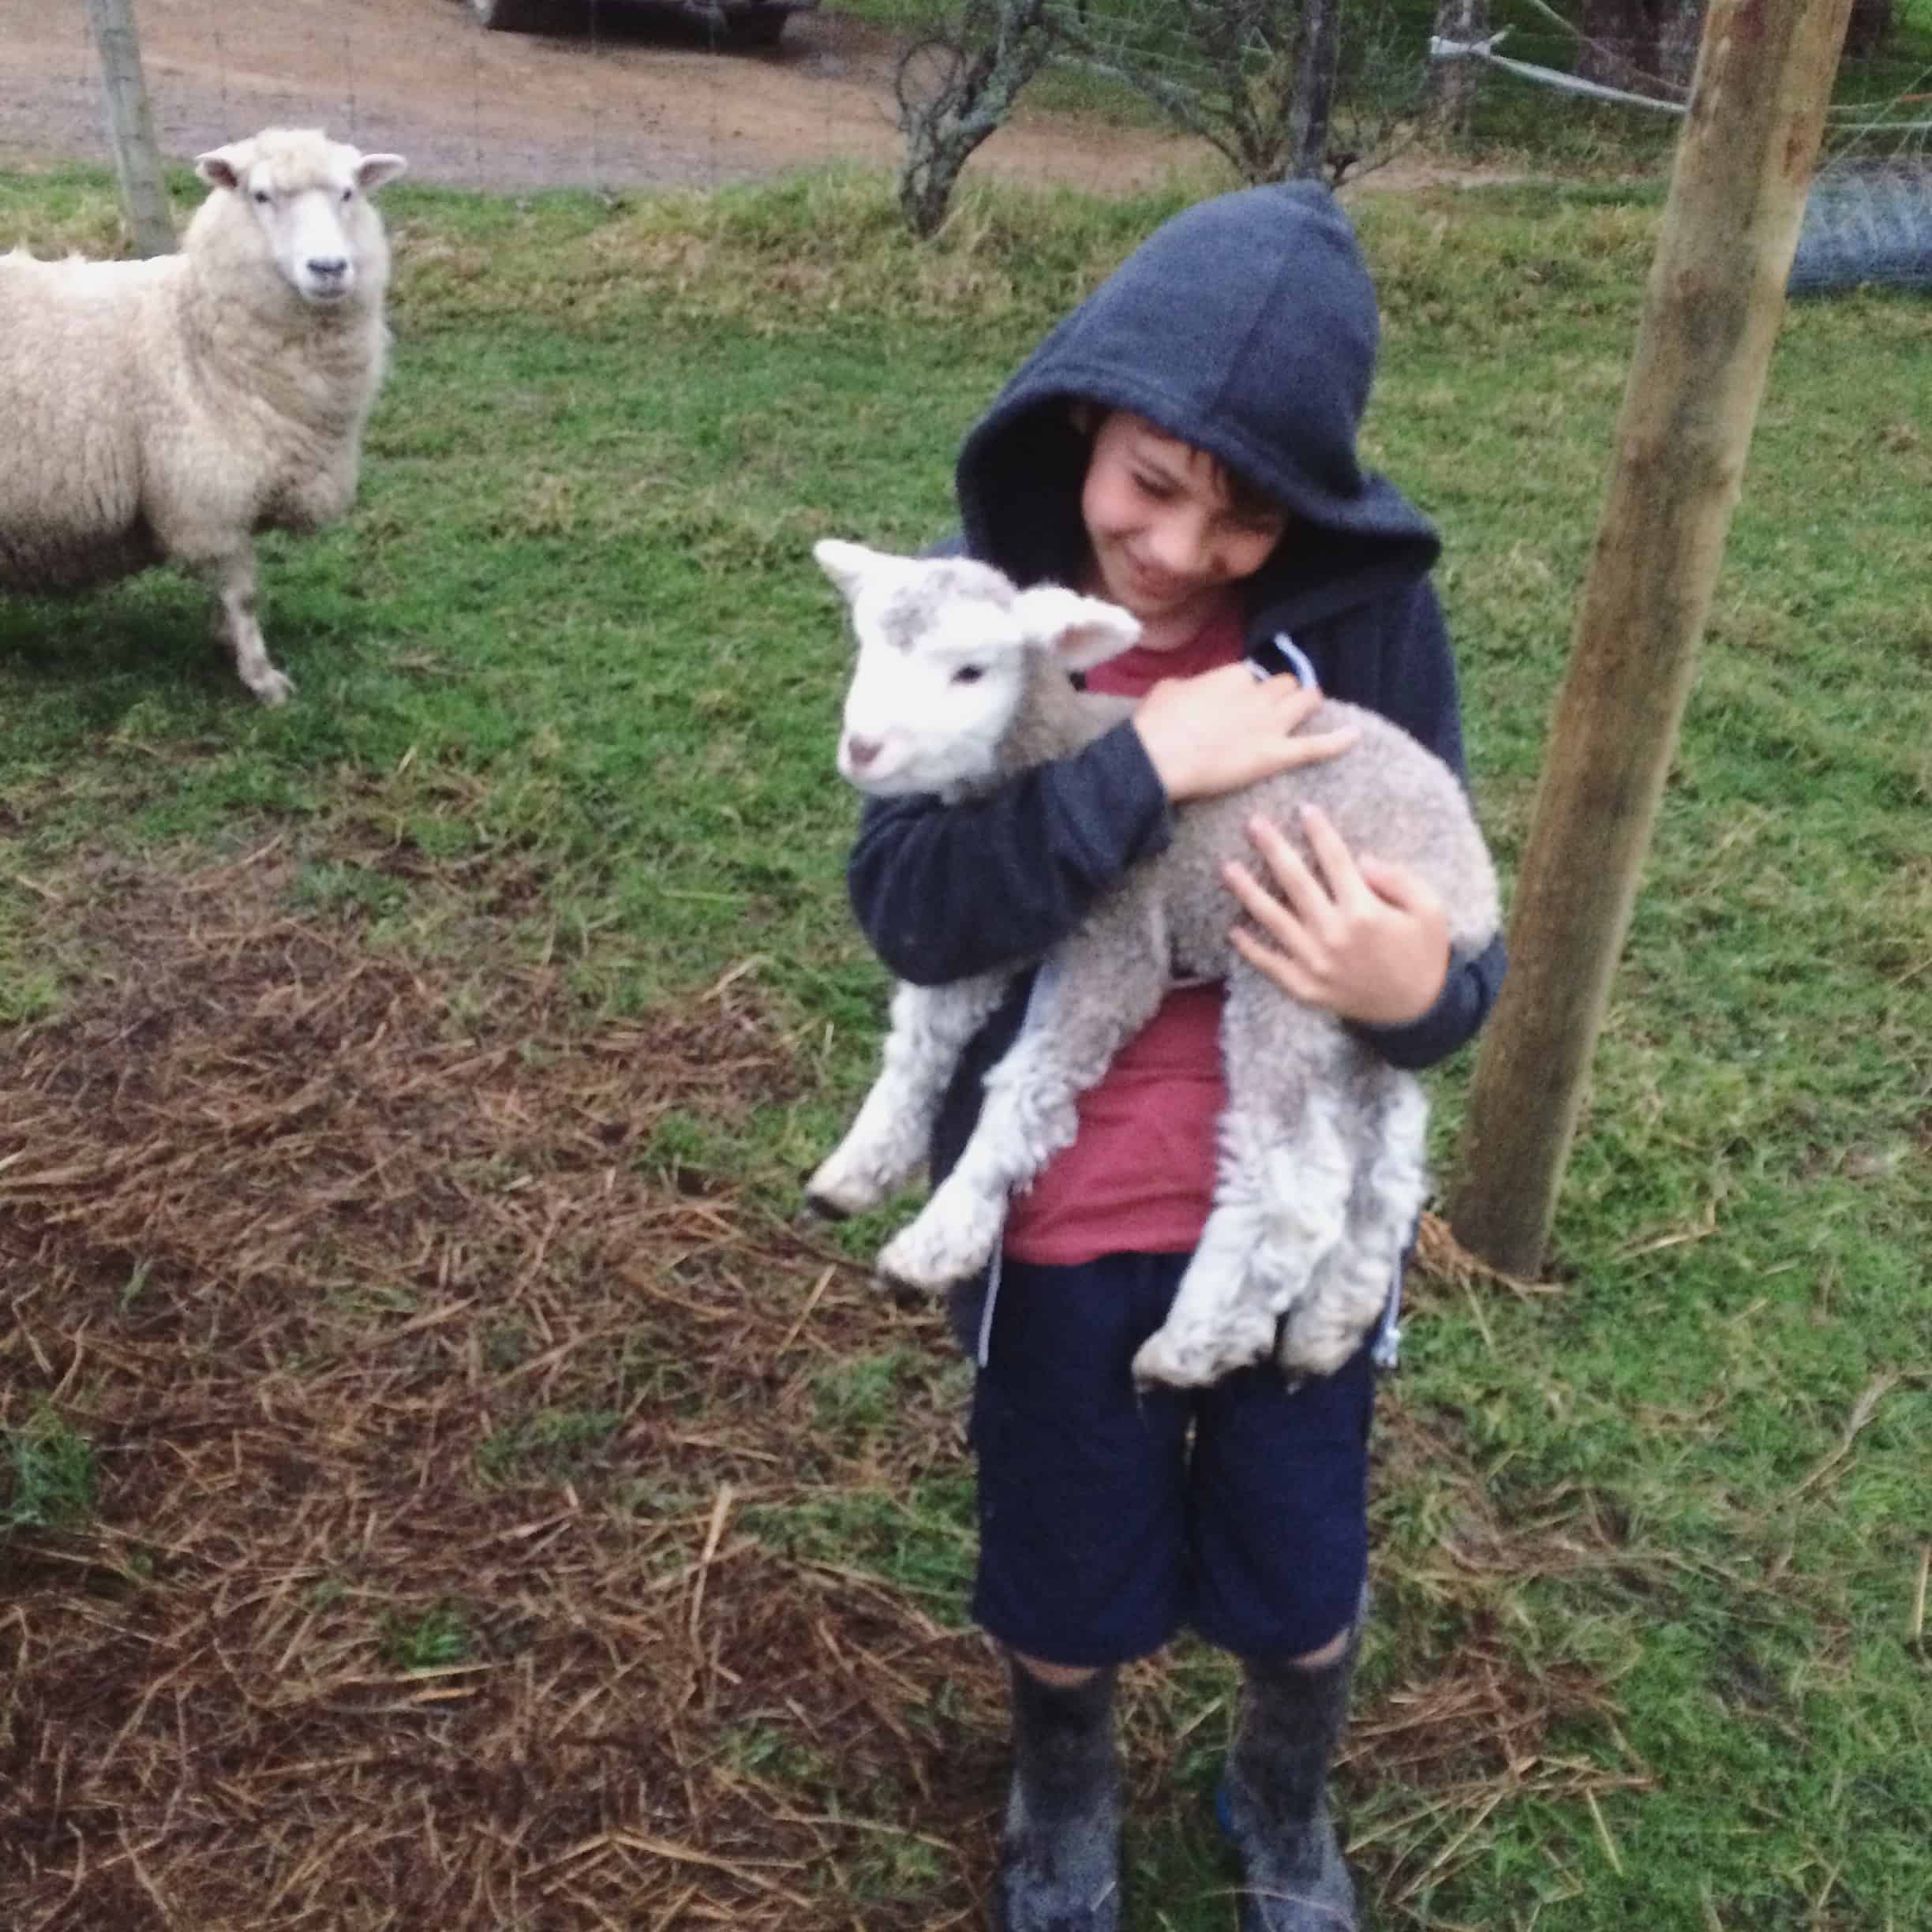 Here is Floppy from last years lambing season. He is my favourite.